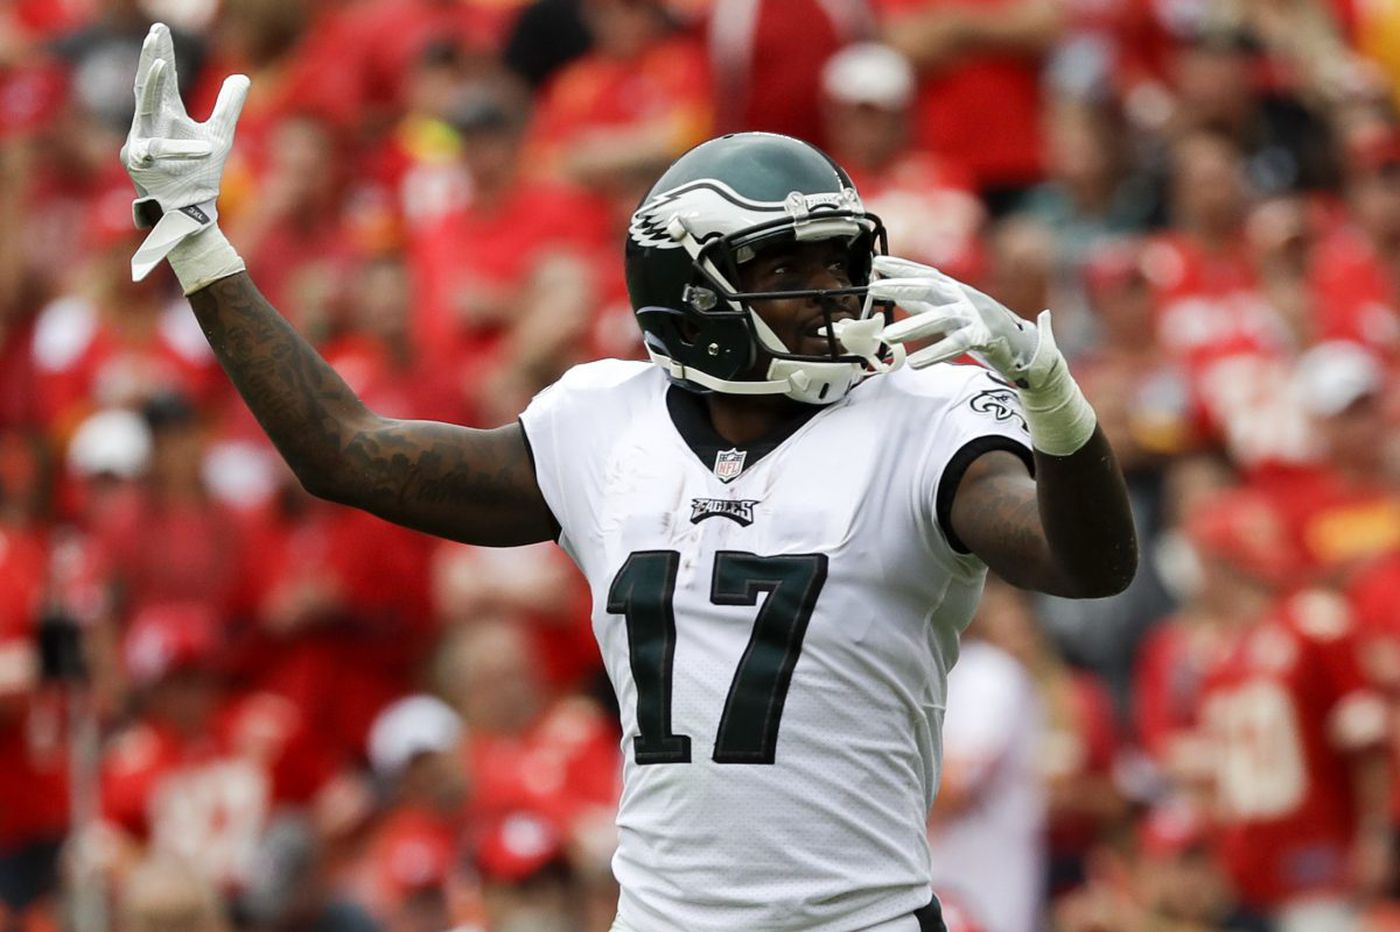 Alshon Jeffery's surgery should make a very good Eagles receiving corps even better | Eagles offseason preview